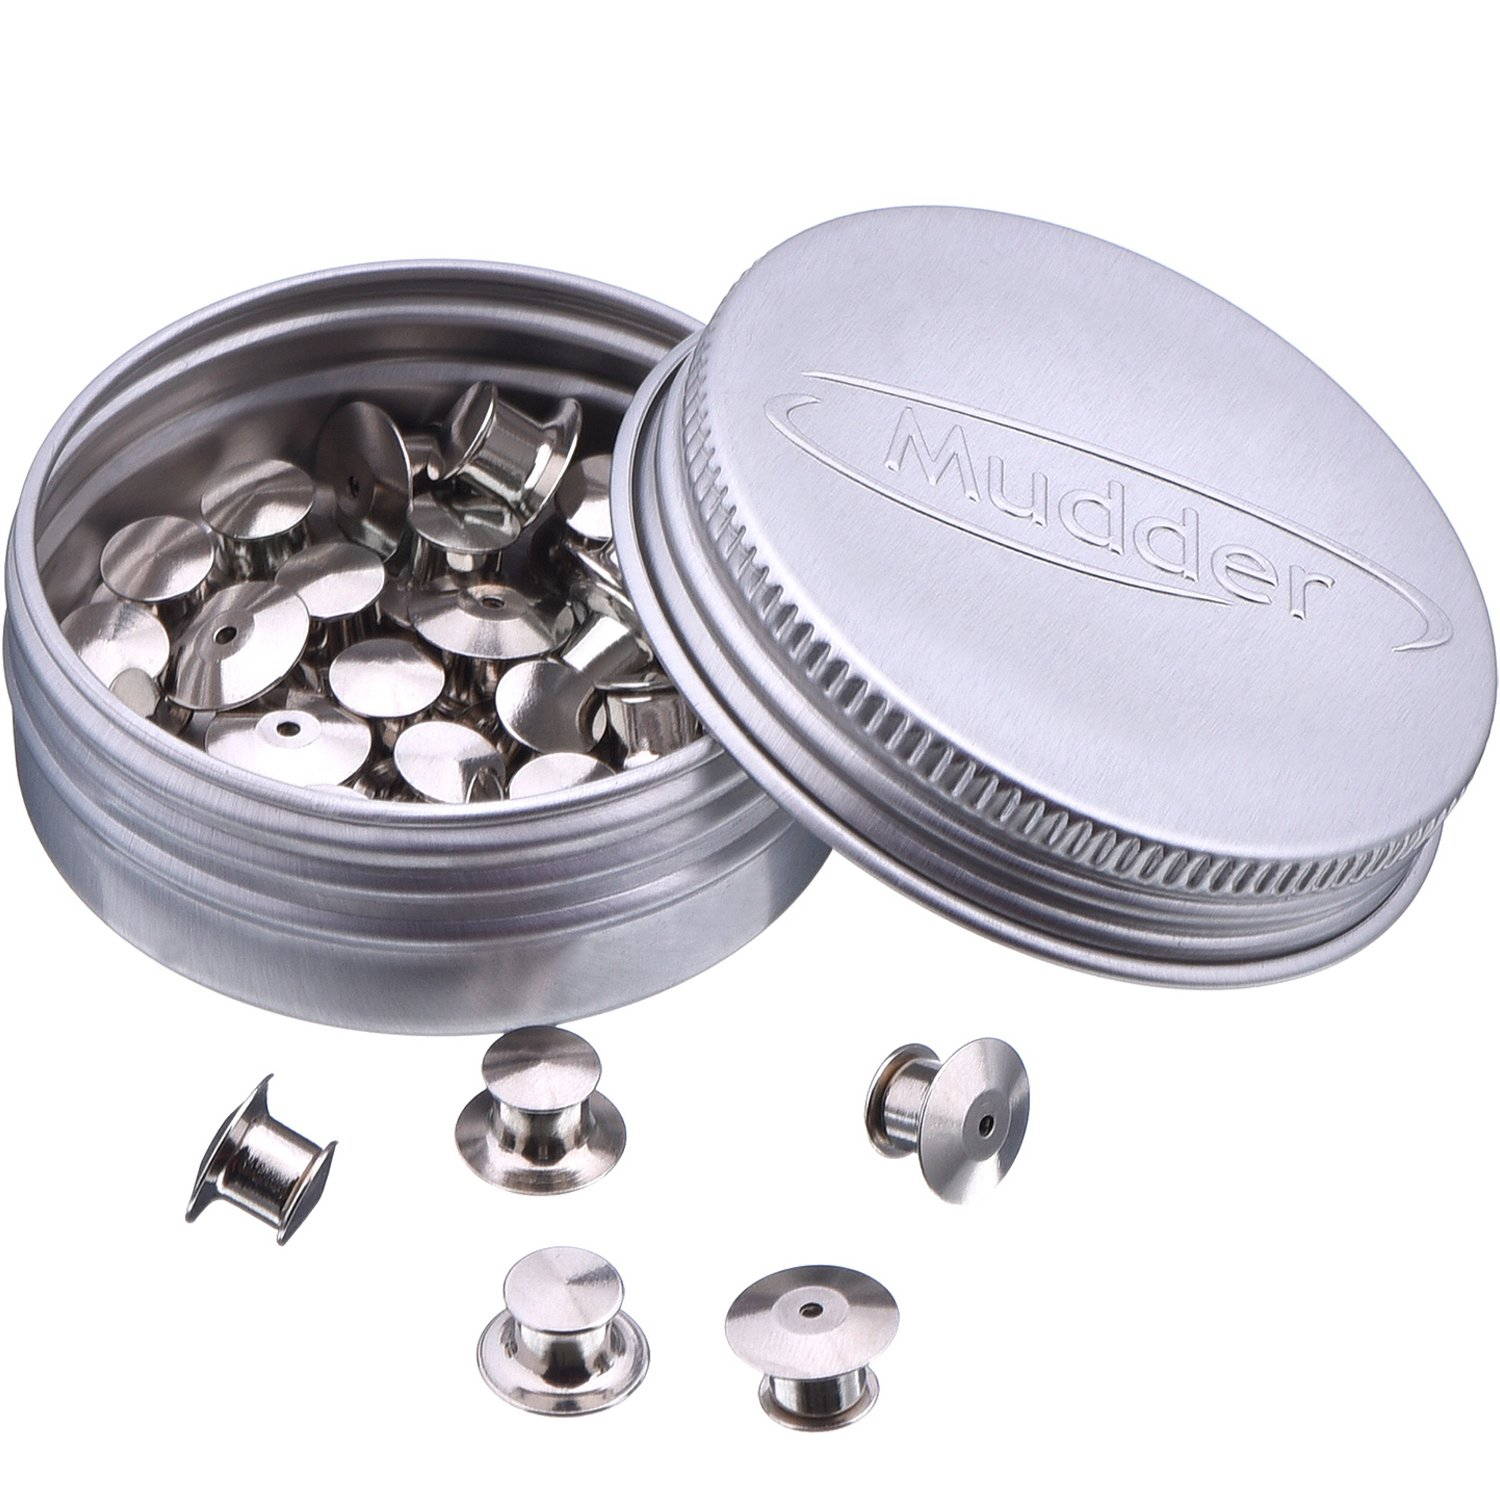 Mudder 30 Pieces Locking Pin Keepers Backs, No Tool Required (Silver and Gold) 4336828600